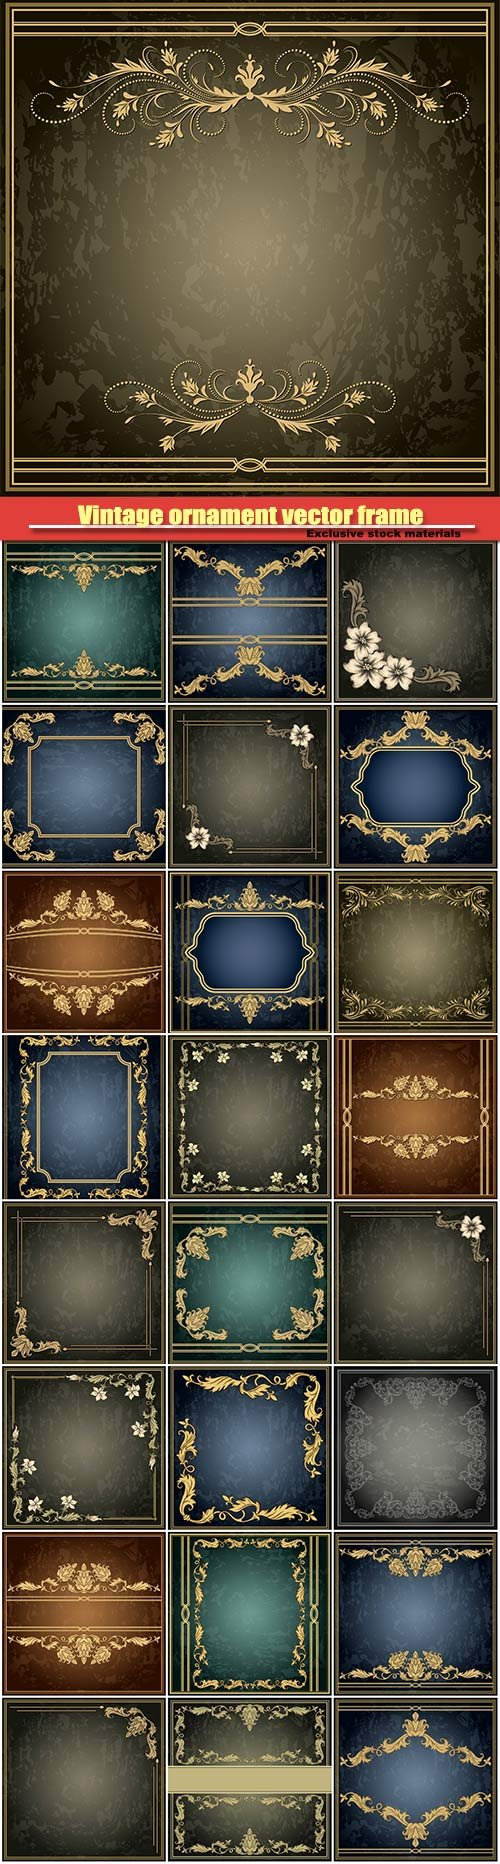 Vintage ornament vector frame